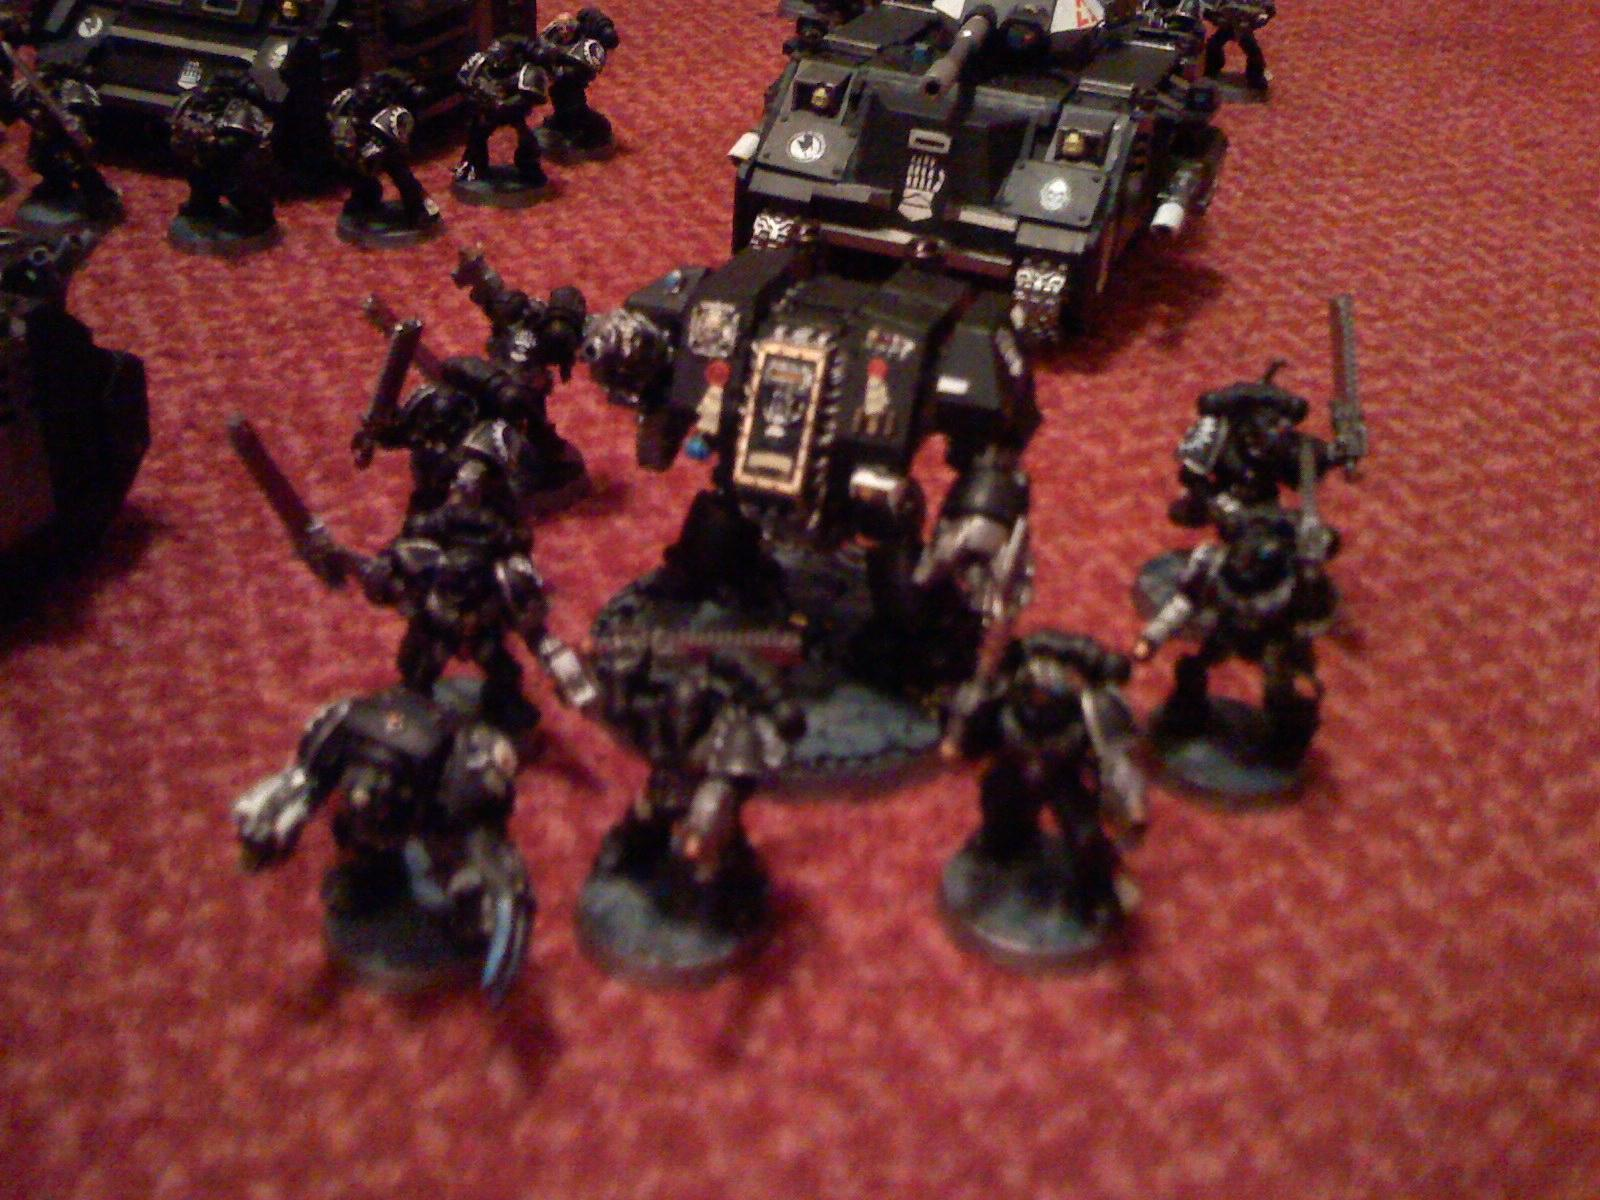 Dreadnought, Iron Hands, Space Marines, Tactical Squad, Warhammer 40,000